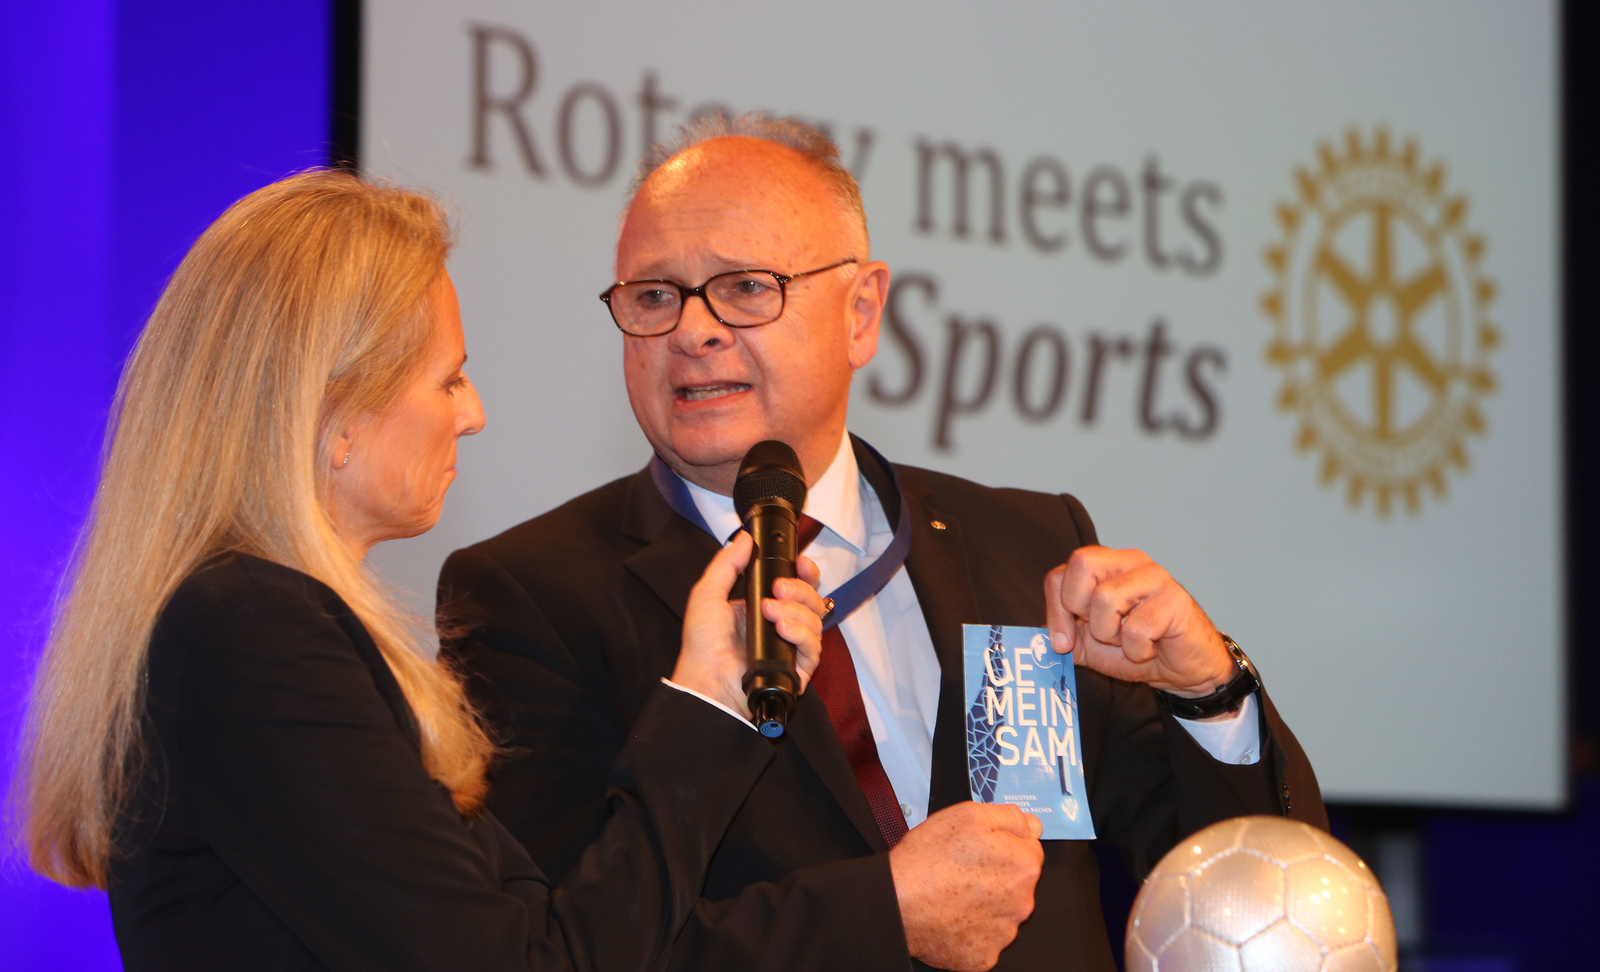 2018, rotary meets sports, ismael sadek, governor, wien